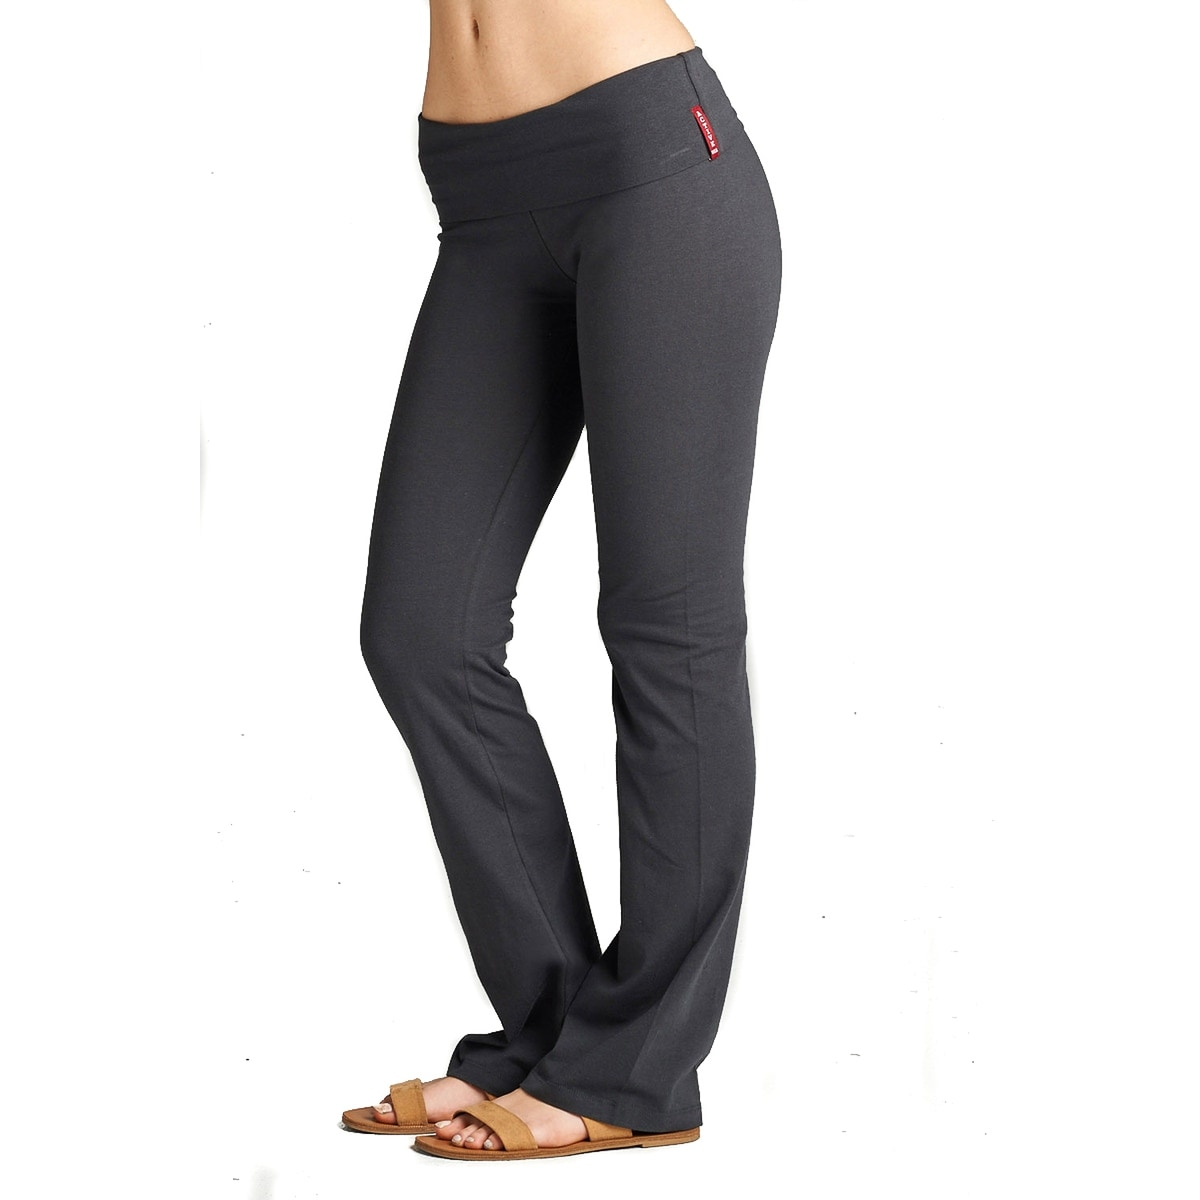 f5e1fd271bd2b Shop Simply Ravishing Yoga Pants Cotton Fold Over Waist Boot Cut (Size:  S-3X) - Free Shipping On Orders Over $45 - Overstock - 13751682